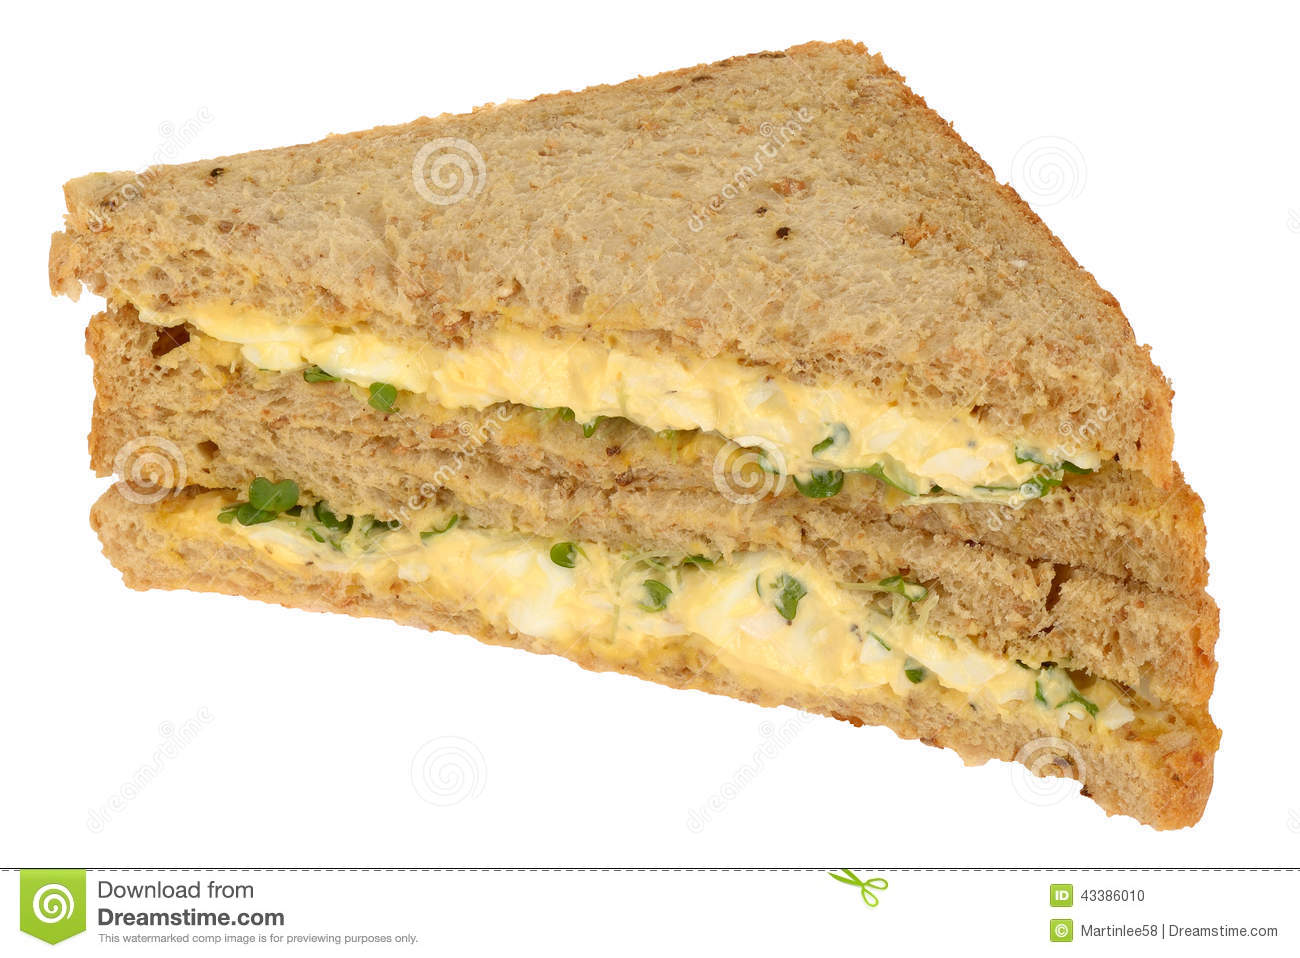 how to make bread sandwich with egg